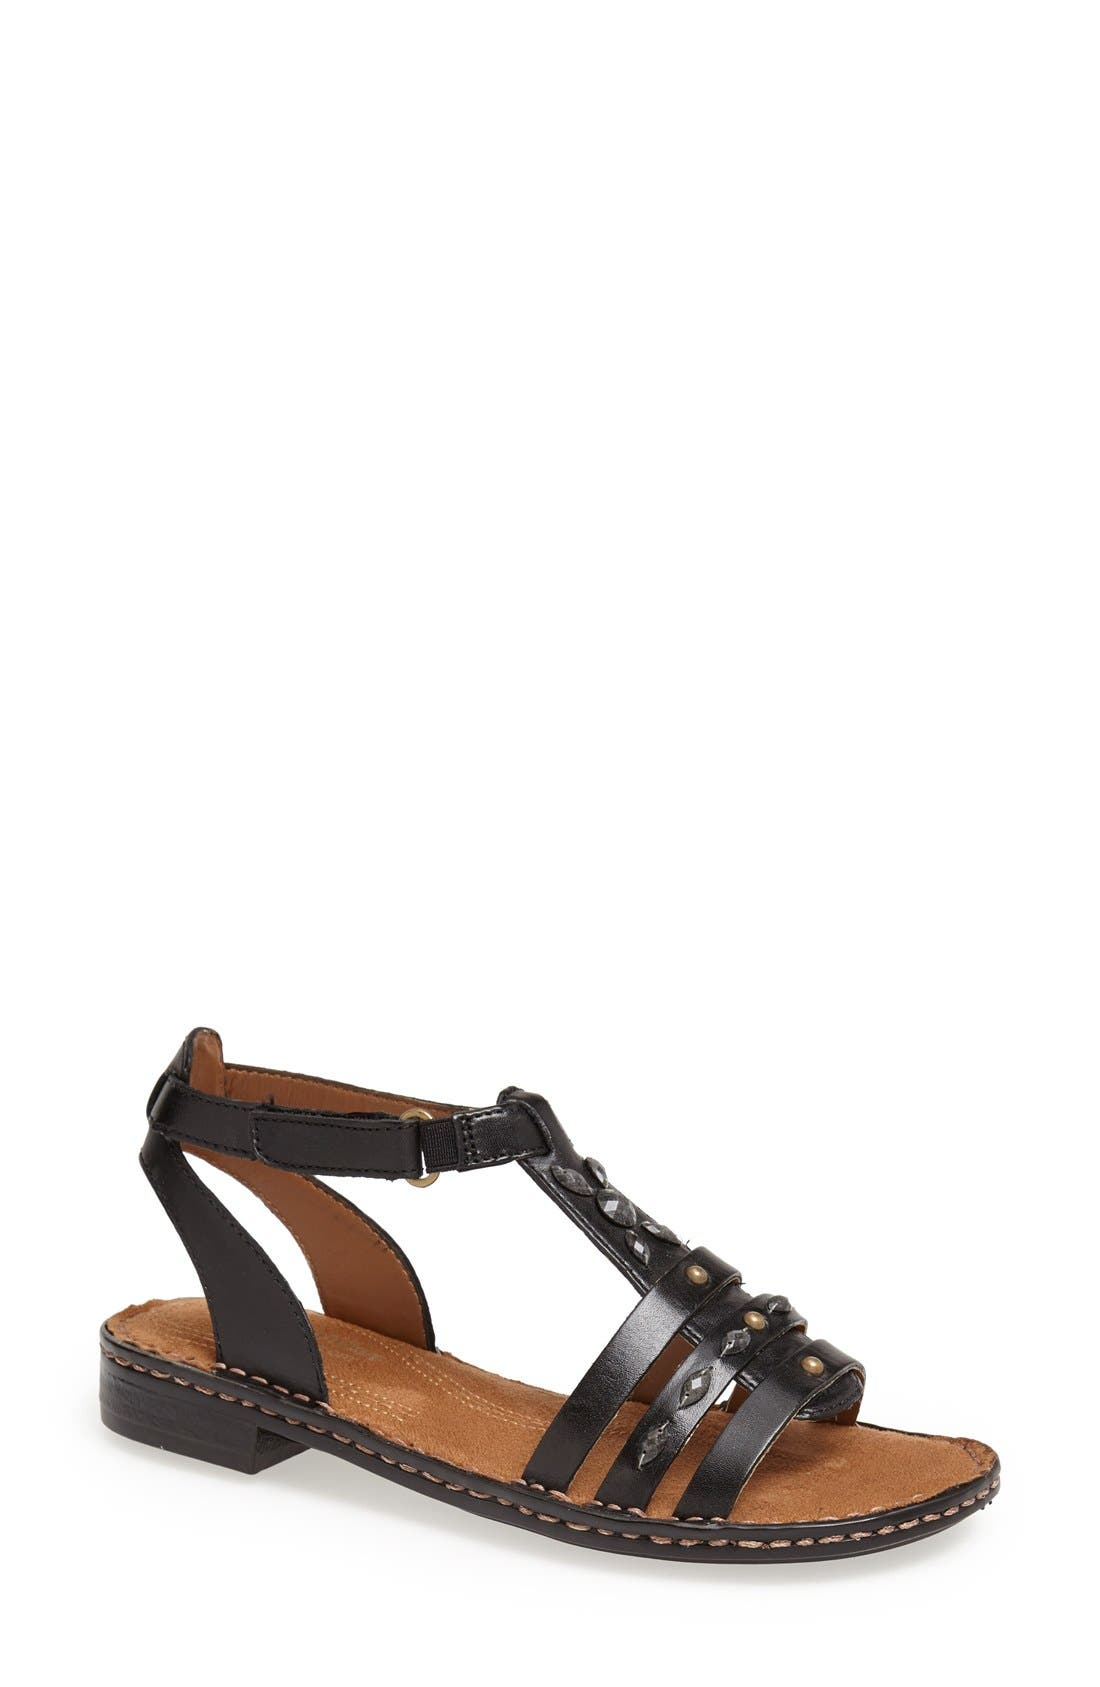 Alternate Image 1 Selected - Naturalizer 'Rhapsody' Sandal